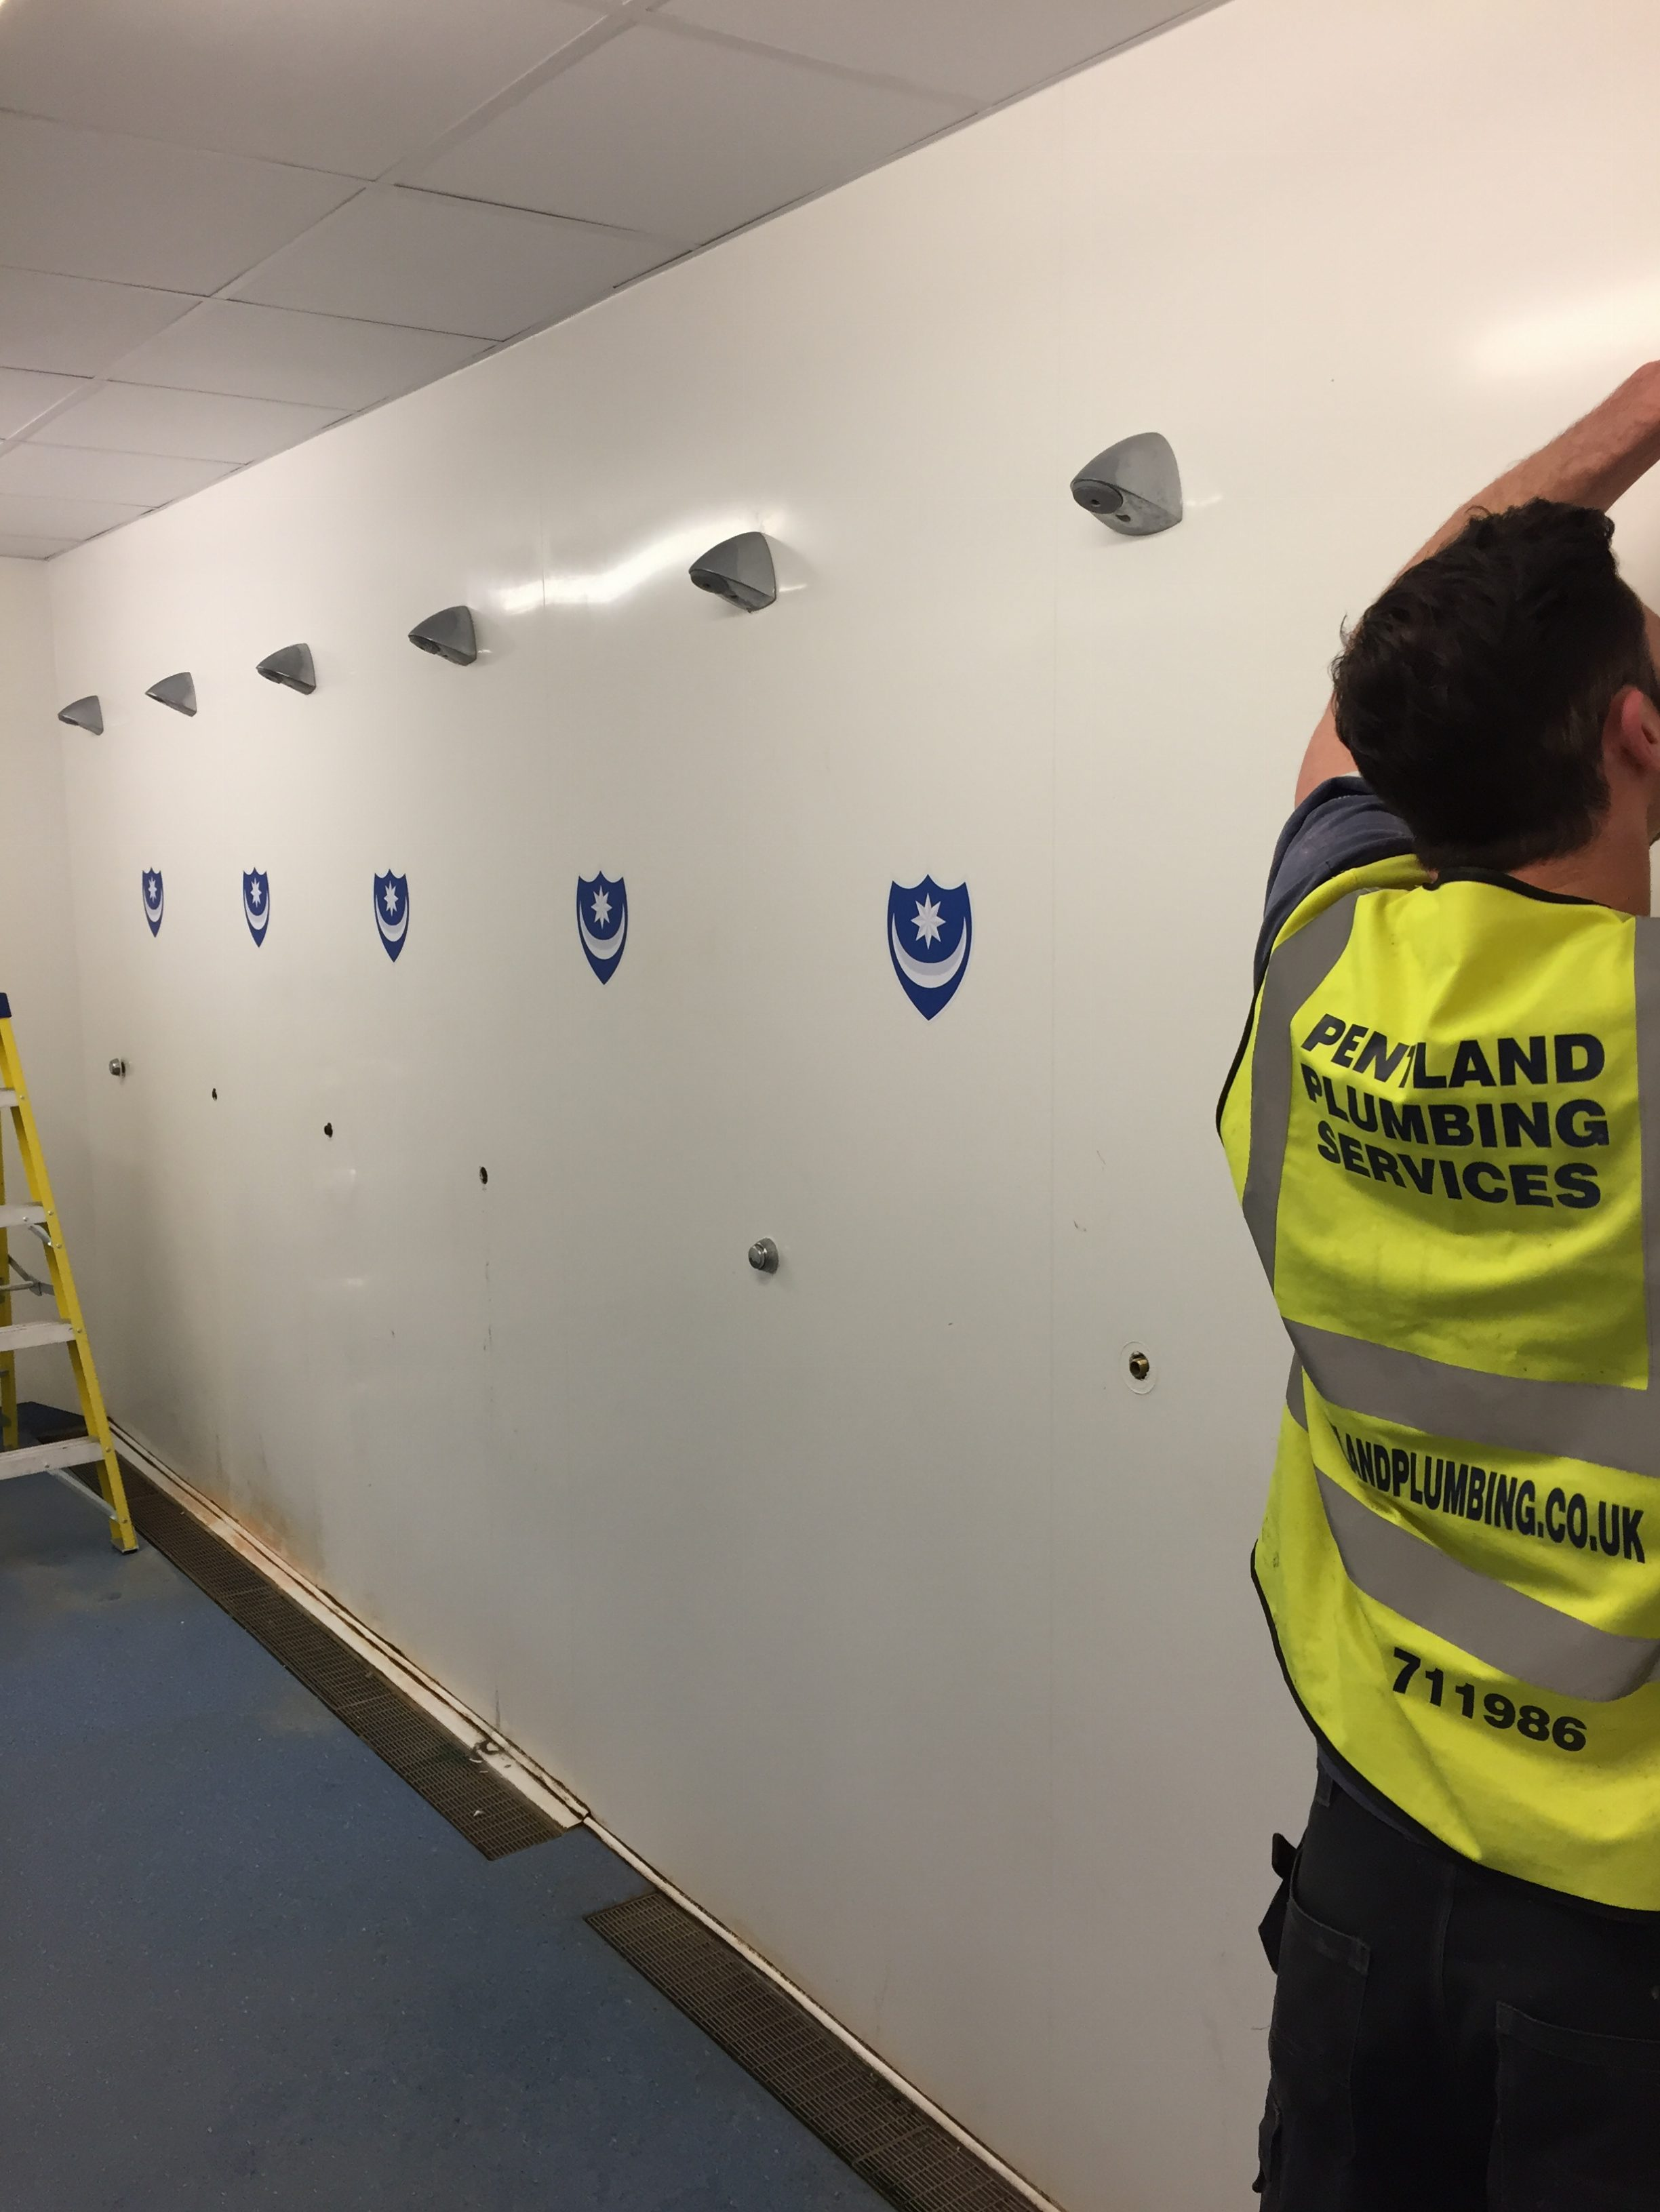 Pentland Plumbing are able to take on all aspects of commercial contracts